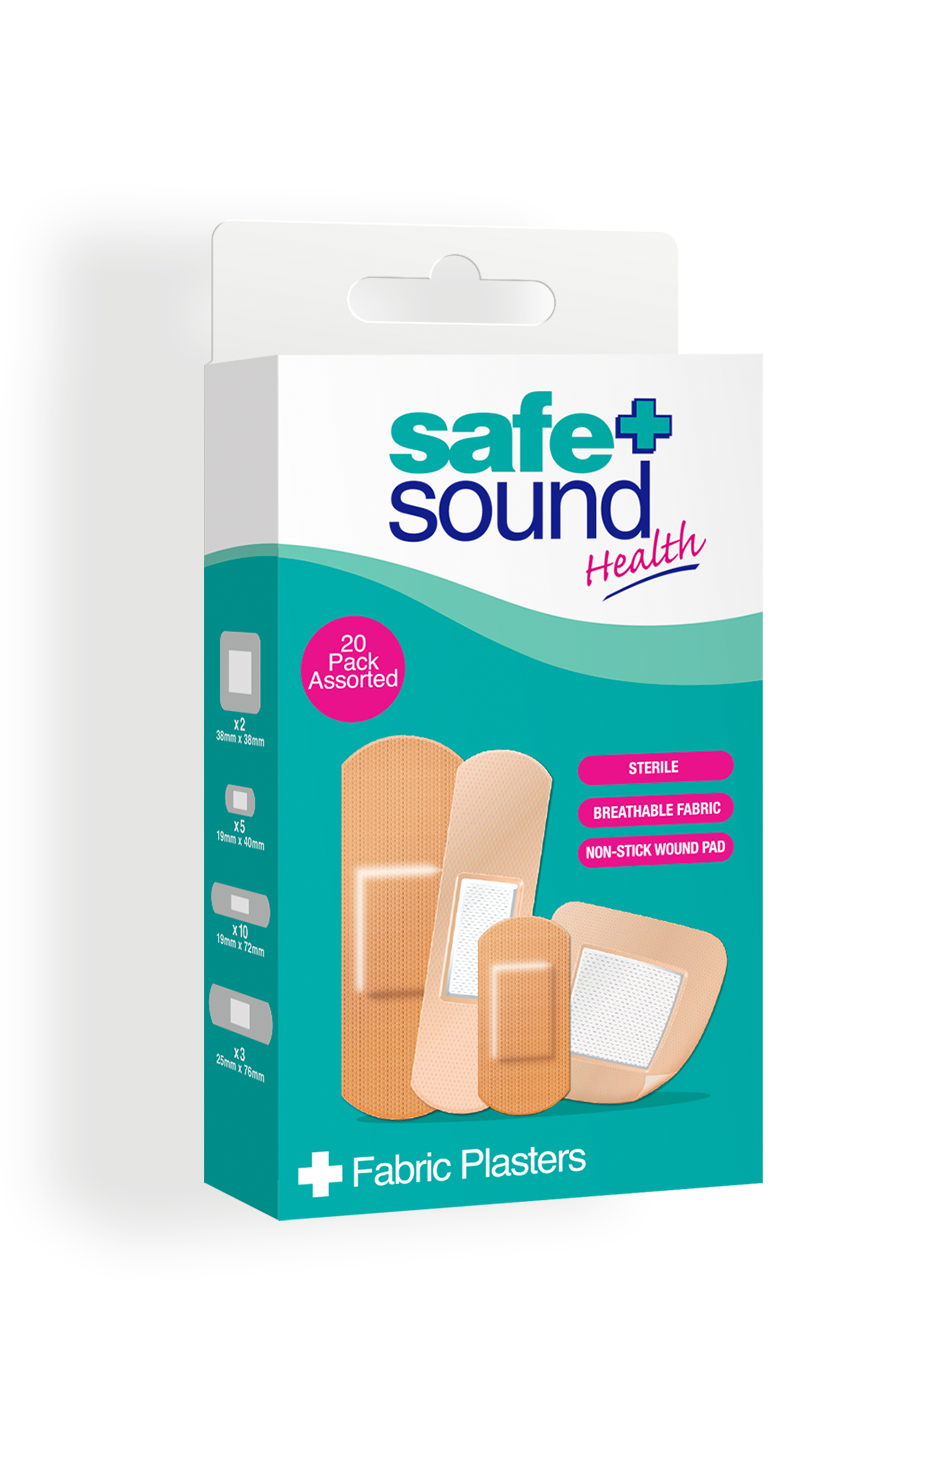 Safe and Sound Health pack of 20 Assorted Fabric Plasters